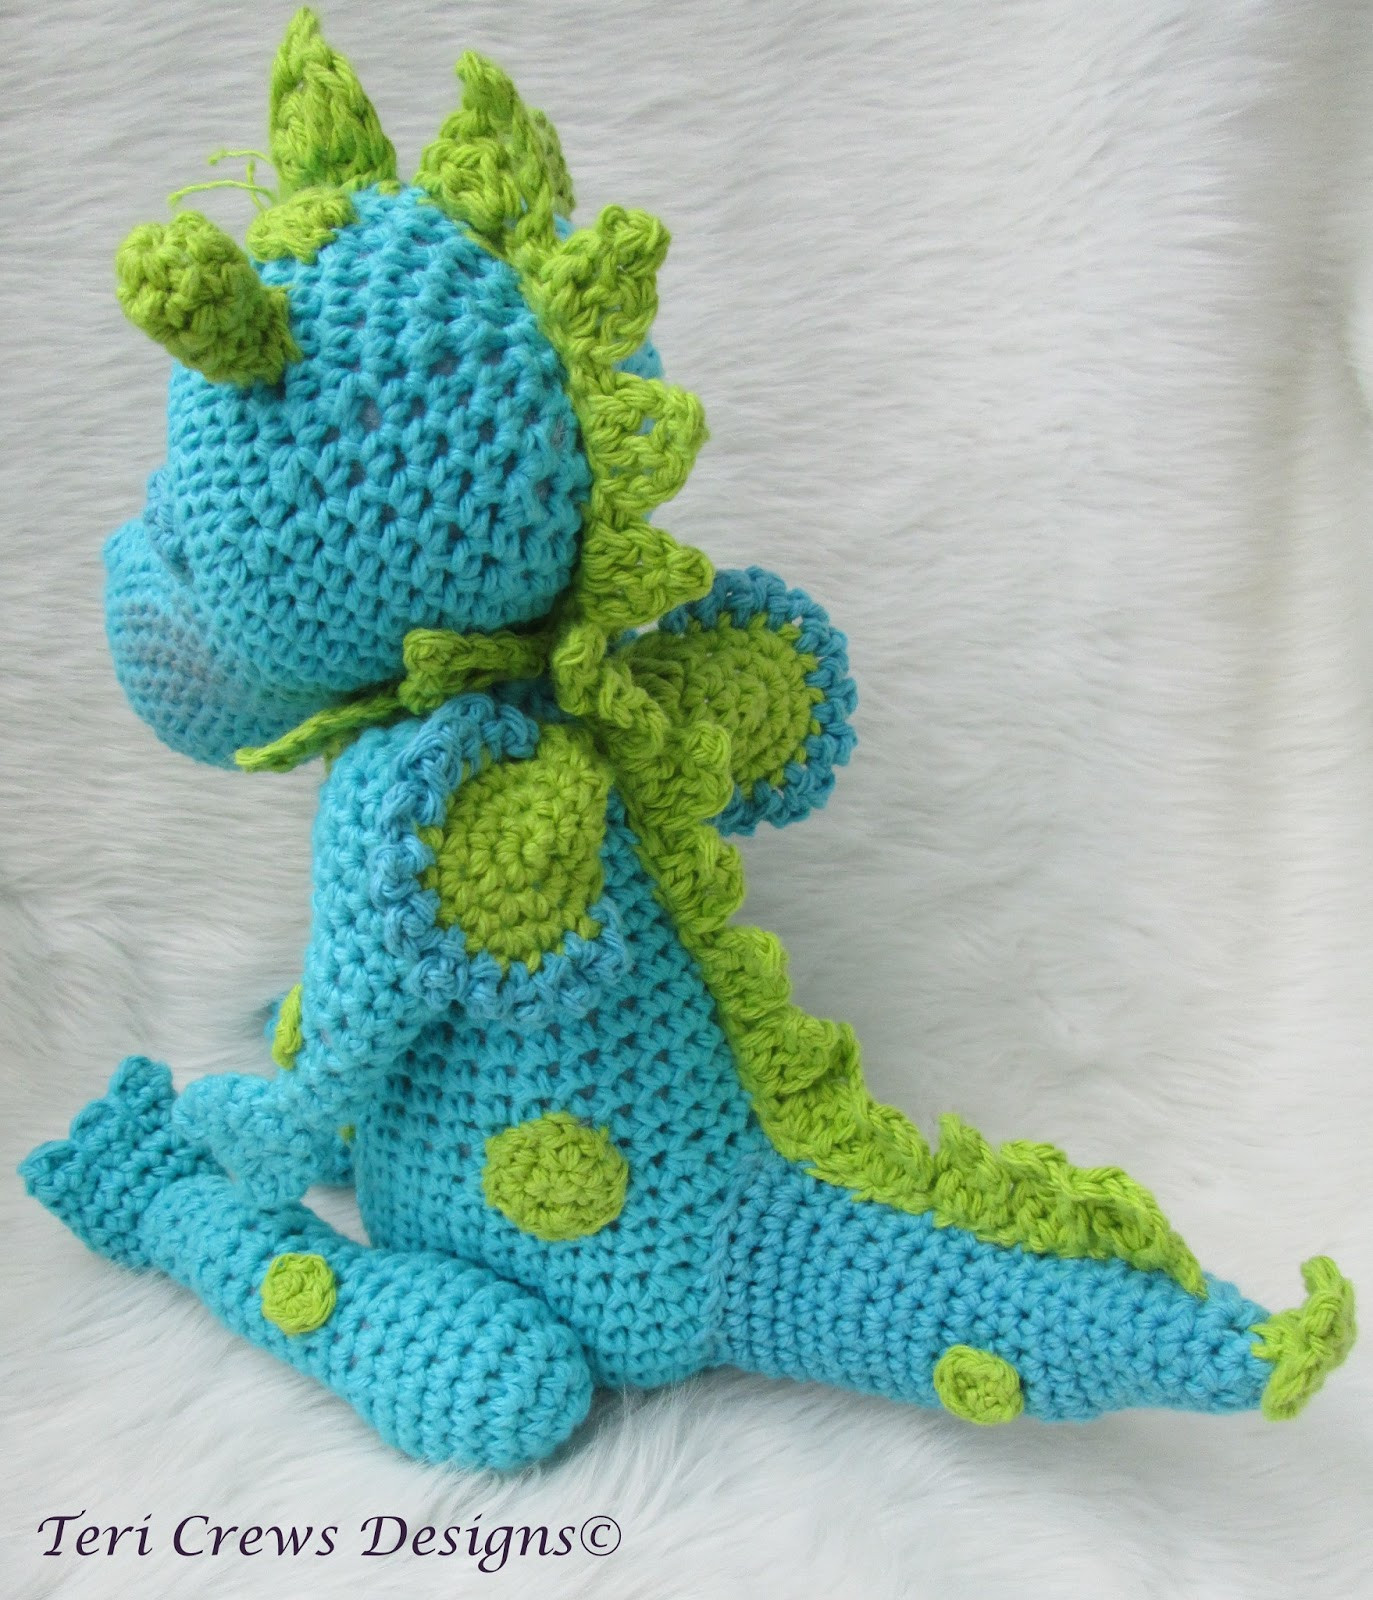 New Crochet Patterns Fresh Teri S Blog New Cute Dragon Crochet Pattern Of Perfect 50 Ideas New Crochet Patterns